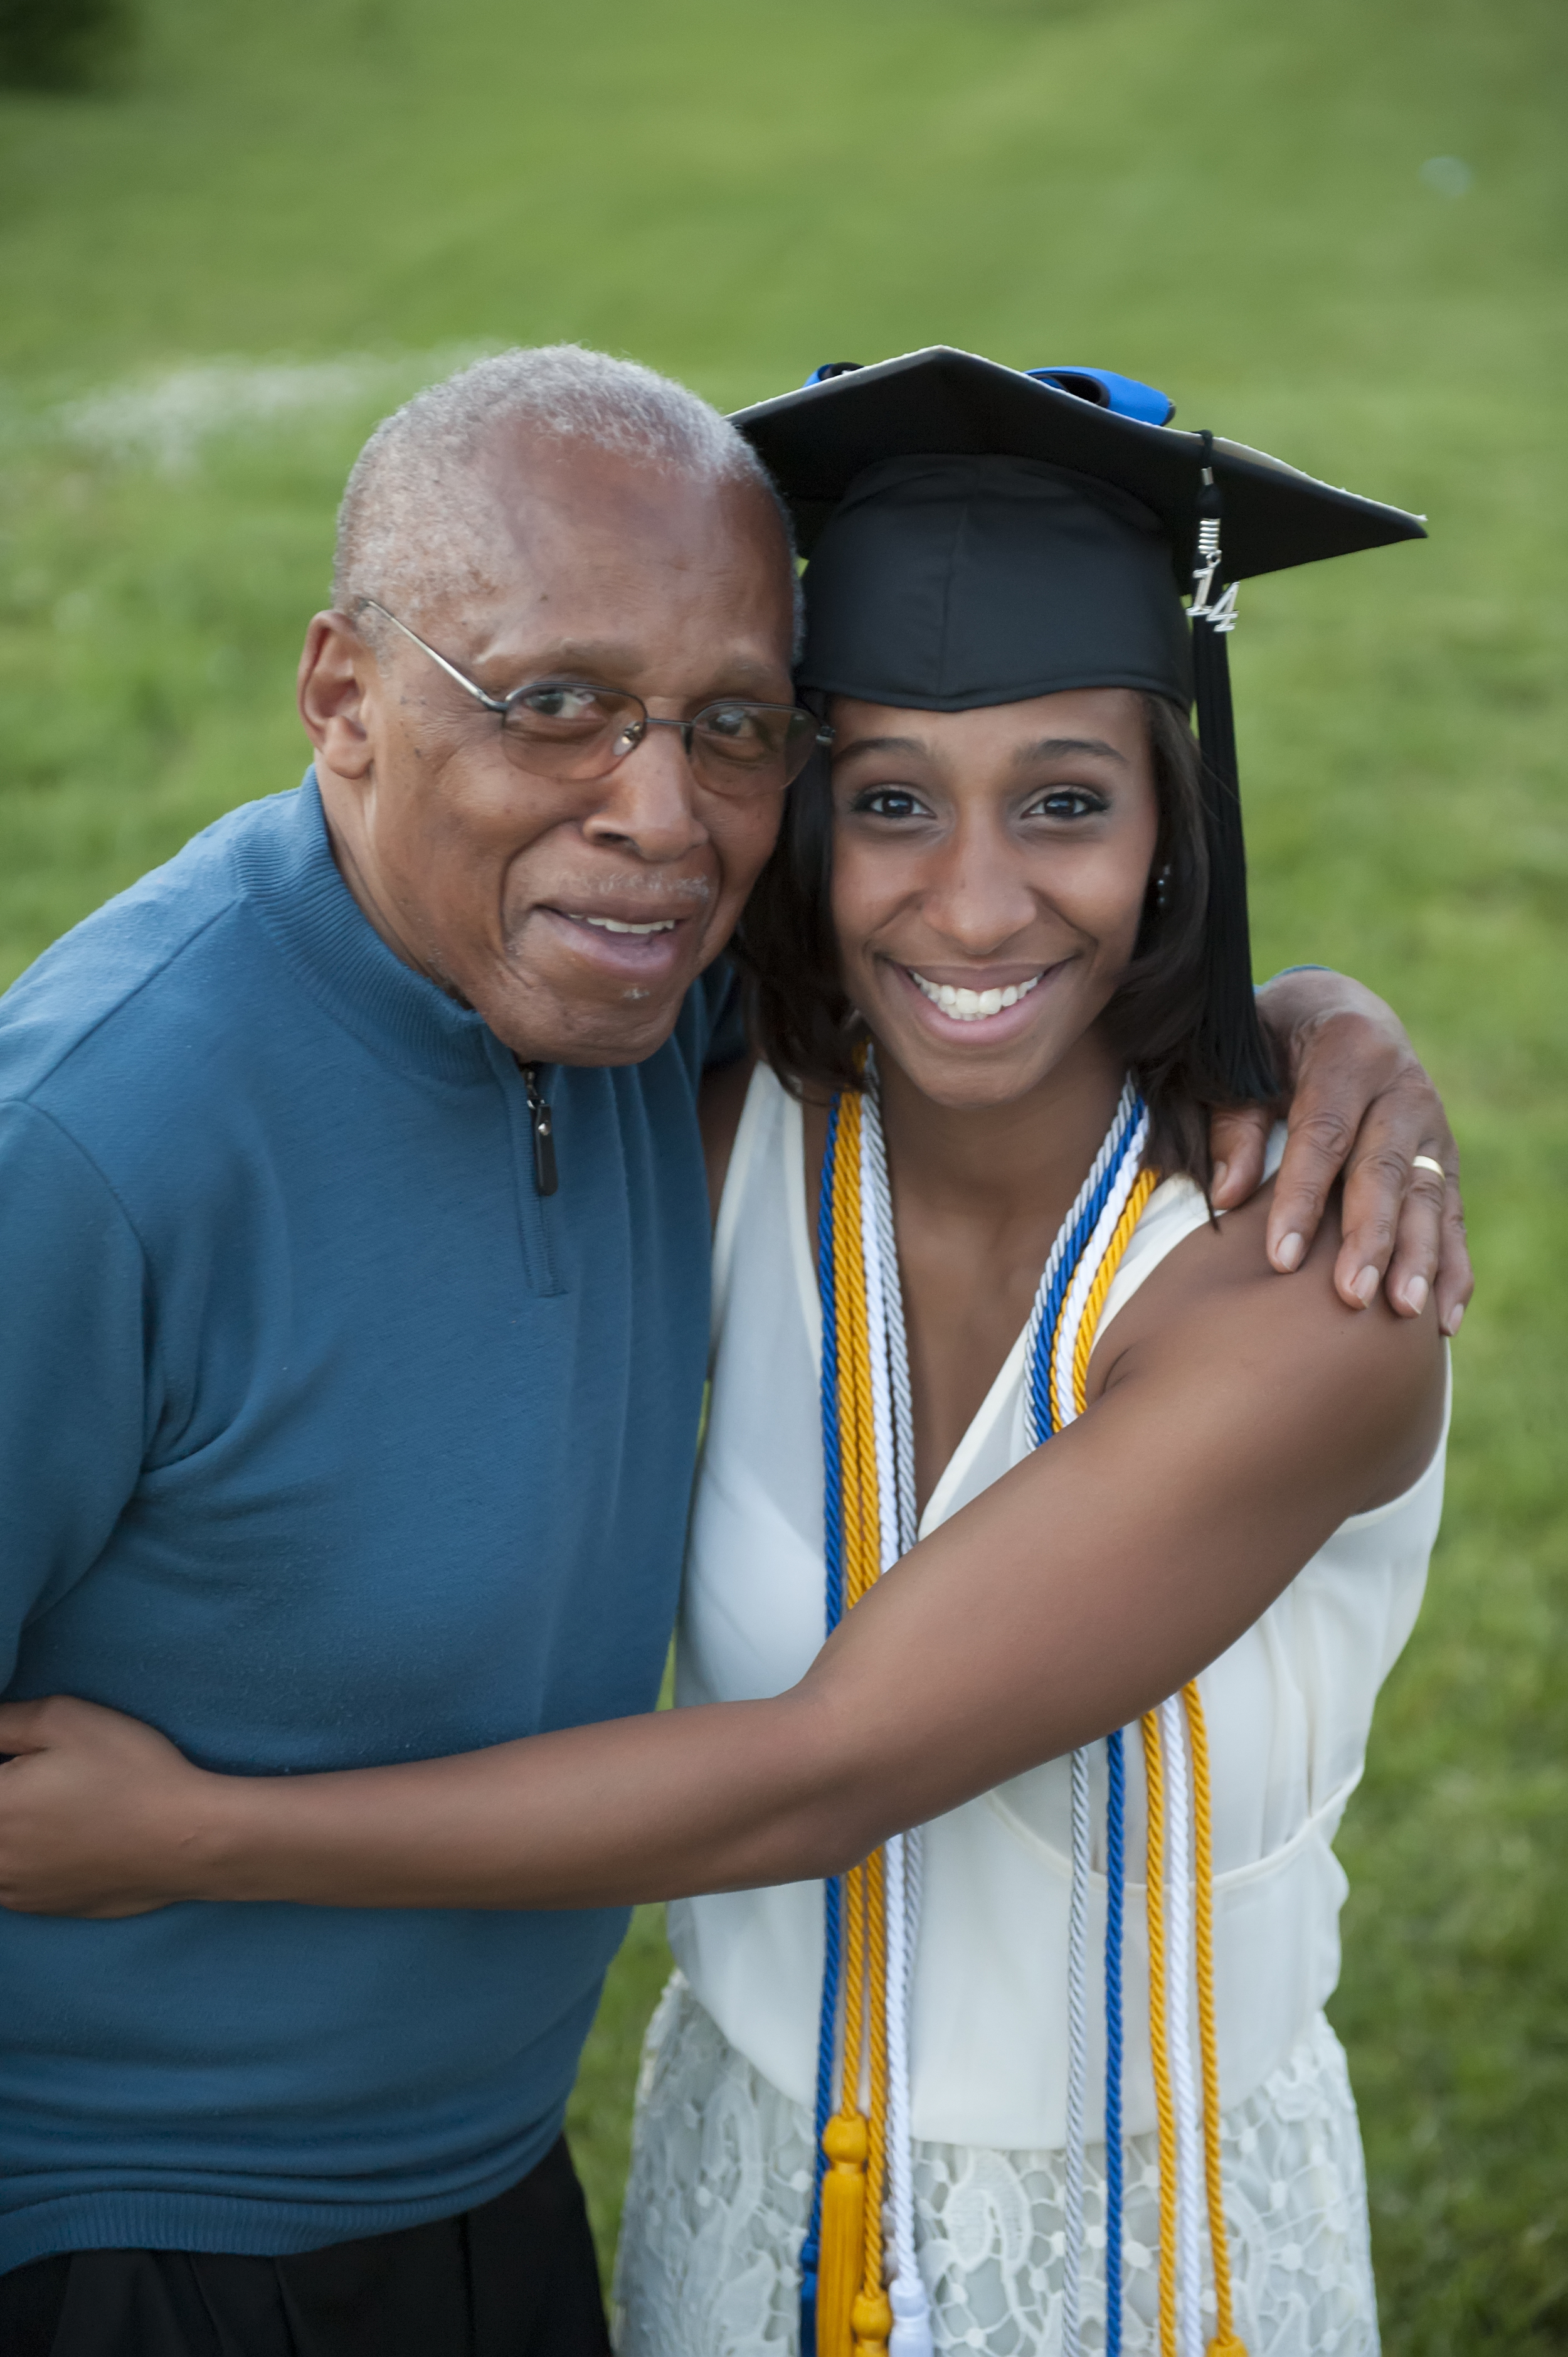 Grandfather with his daughter at her graduation